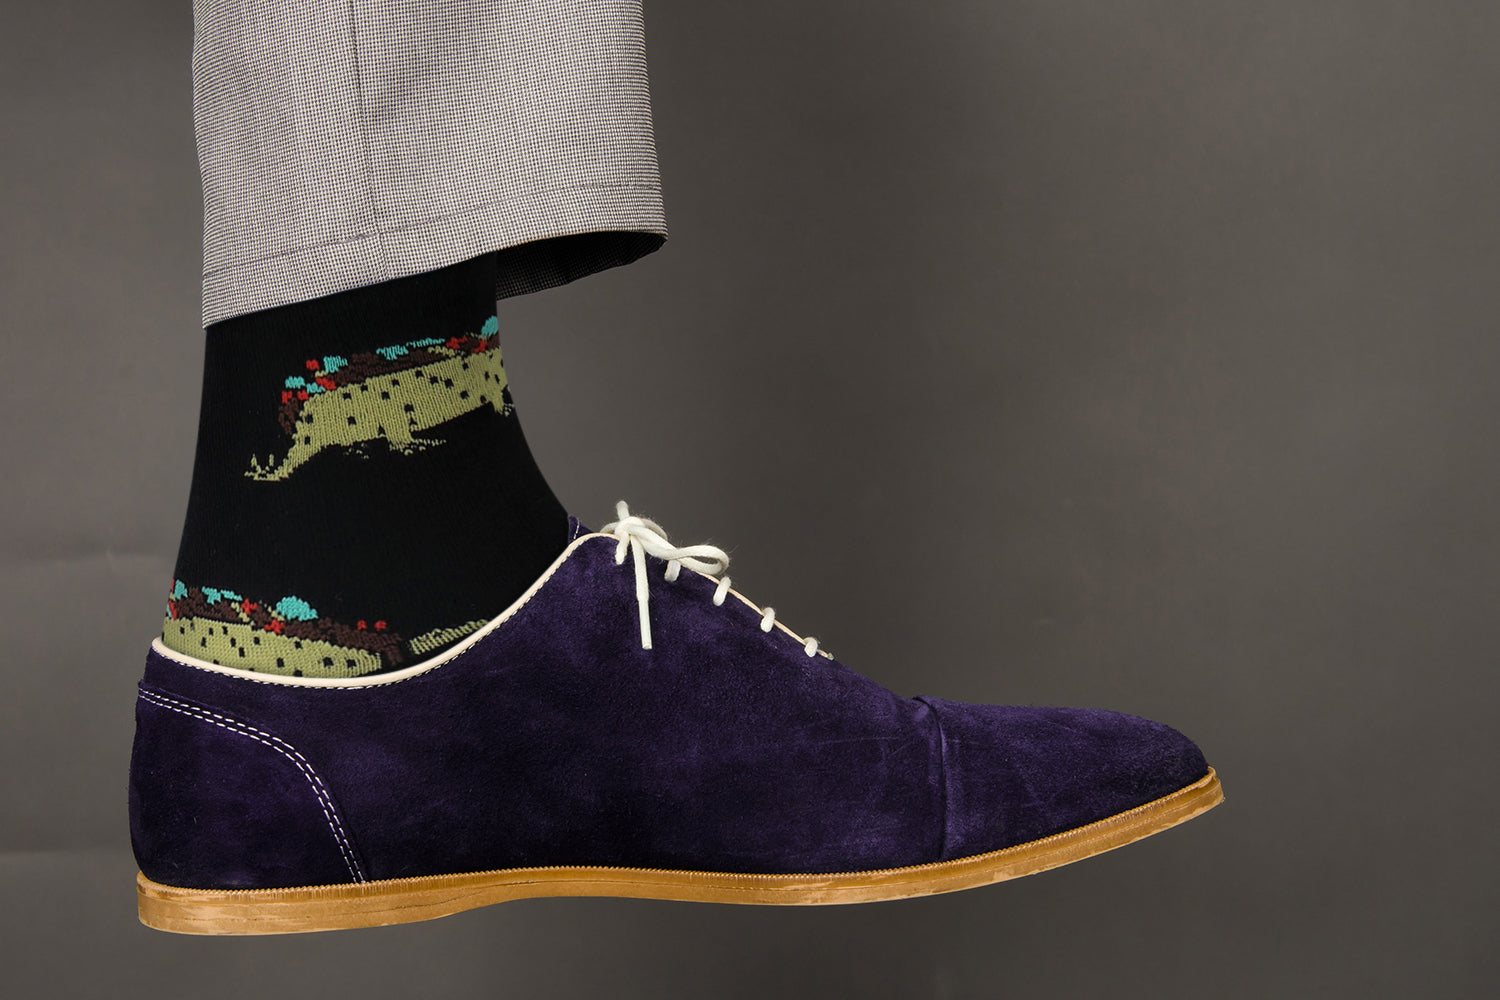 Sick Socks – Tacosaurus – Exotic Animals Casual Dress Socks